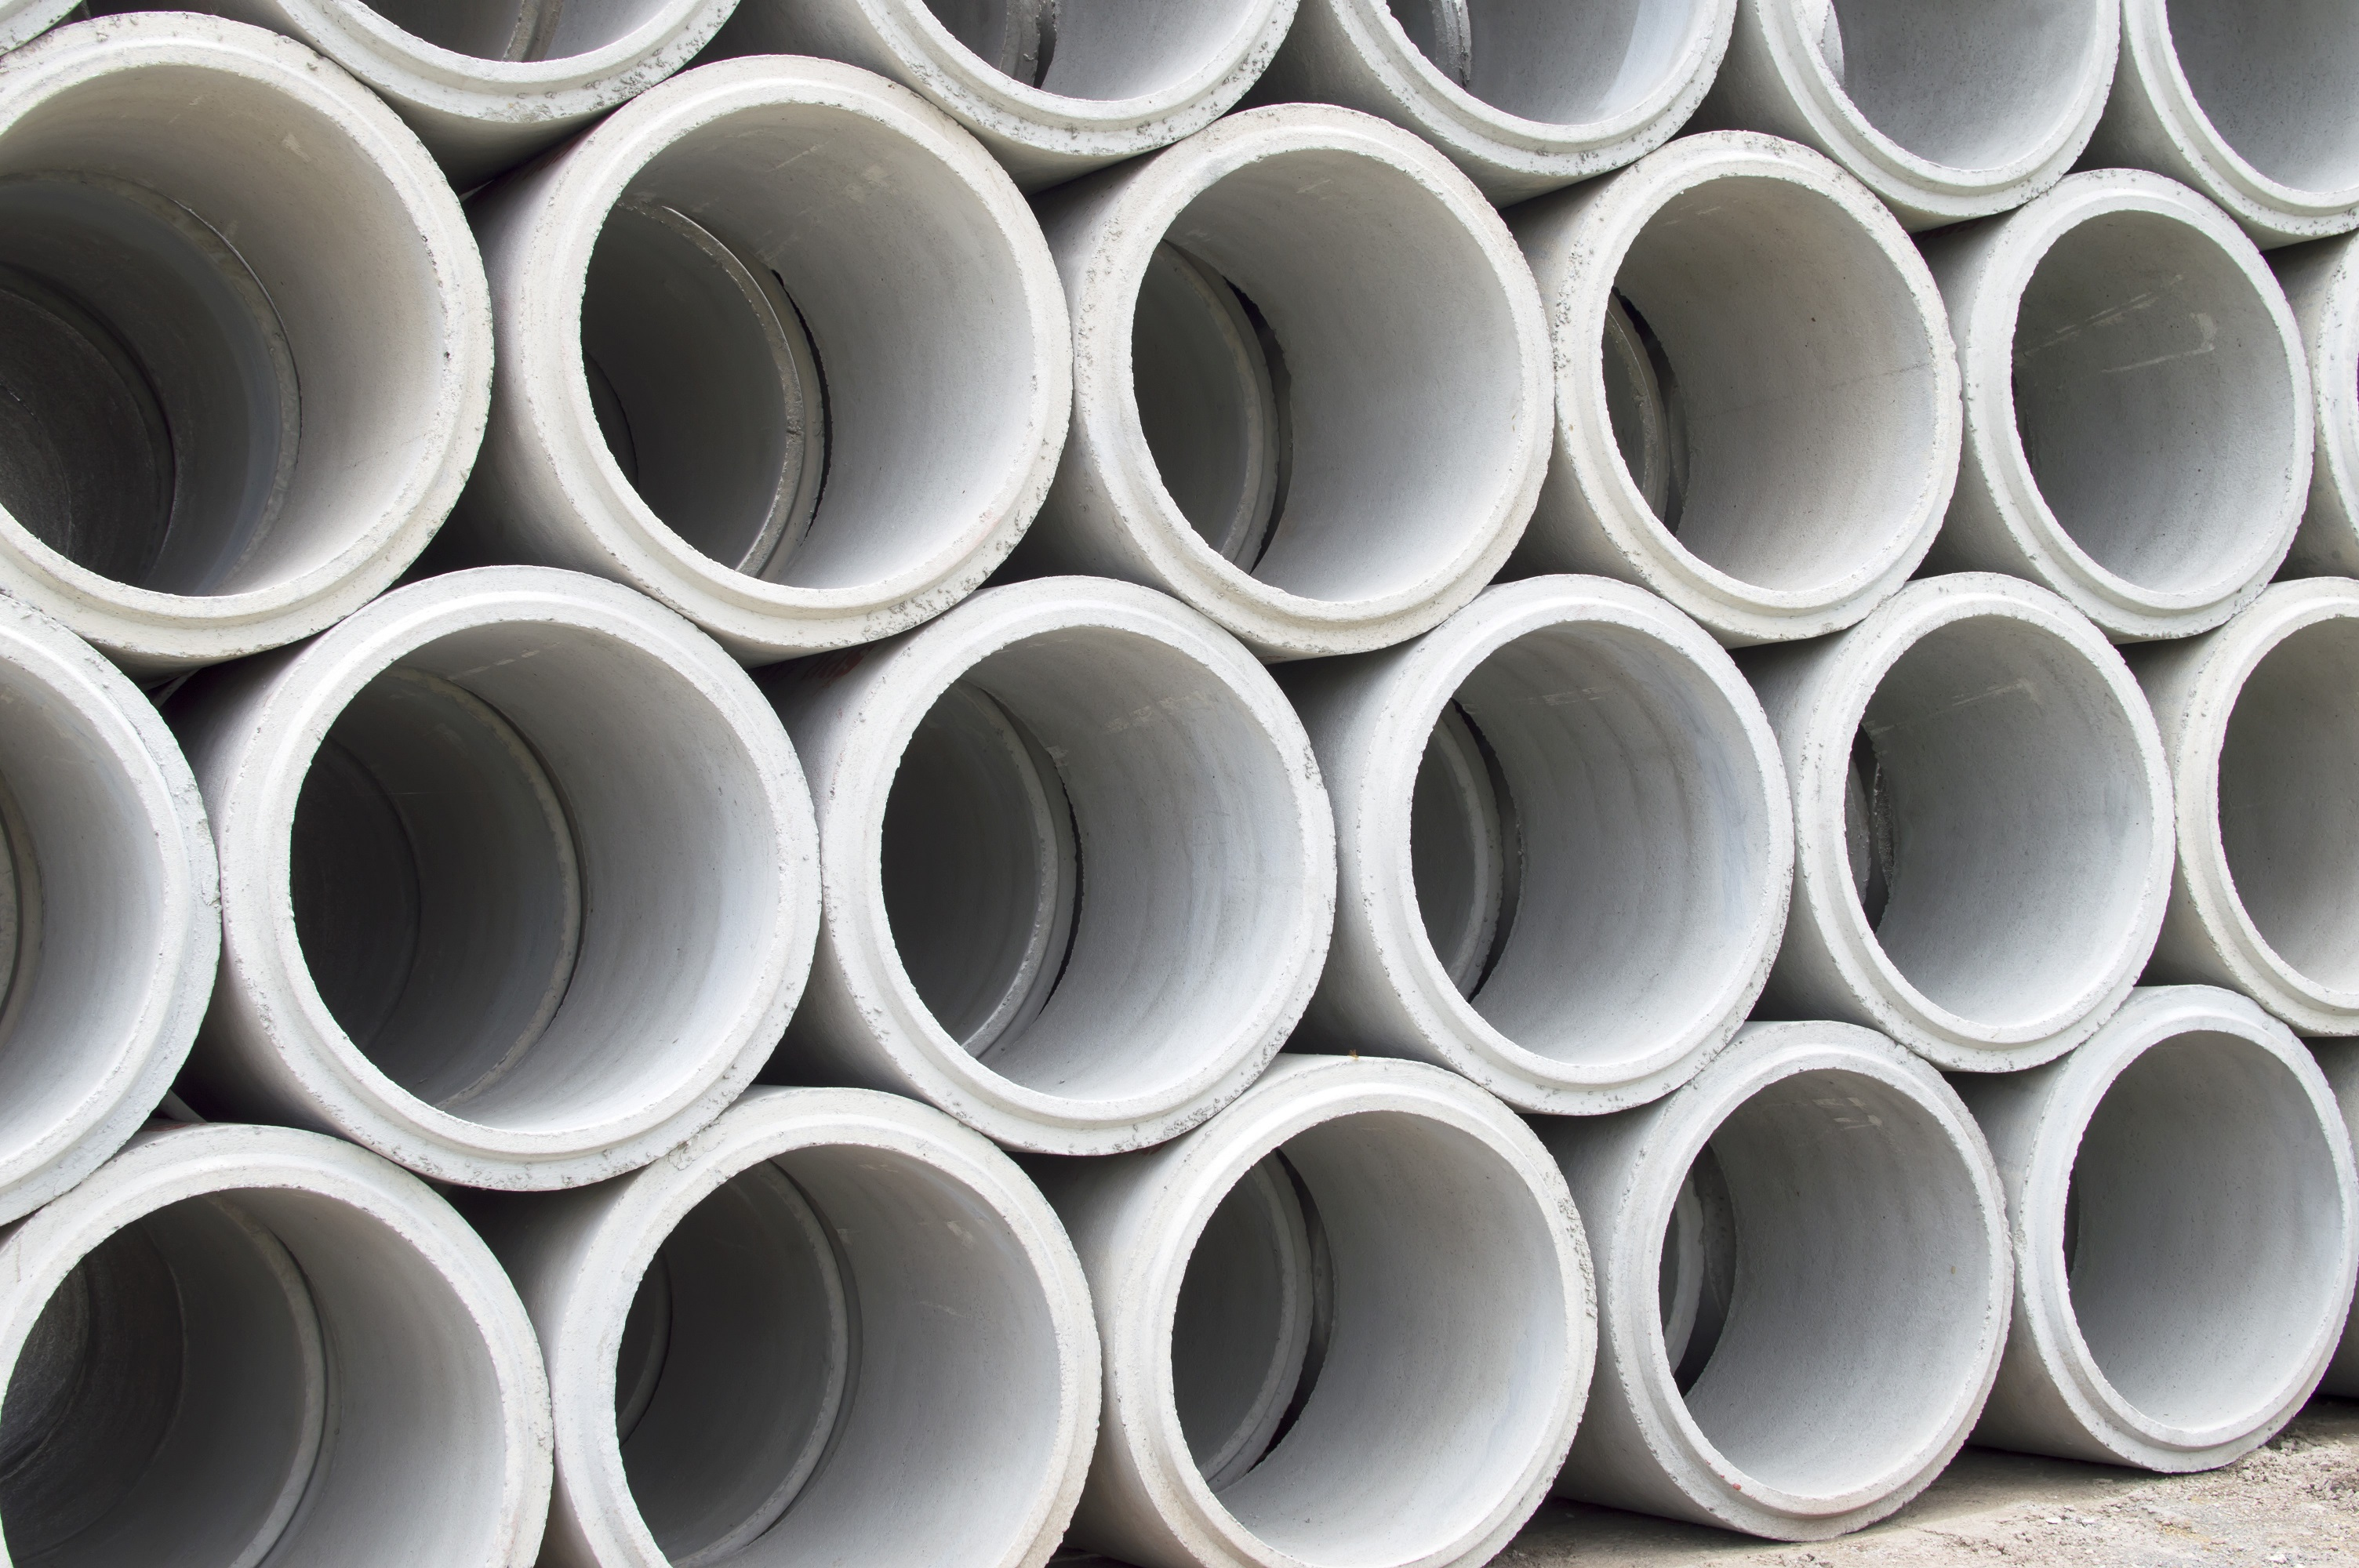 A stack of concrete pipes.